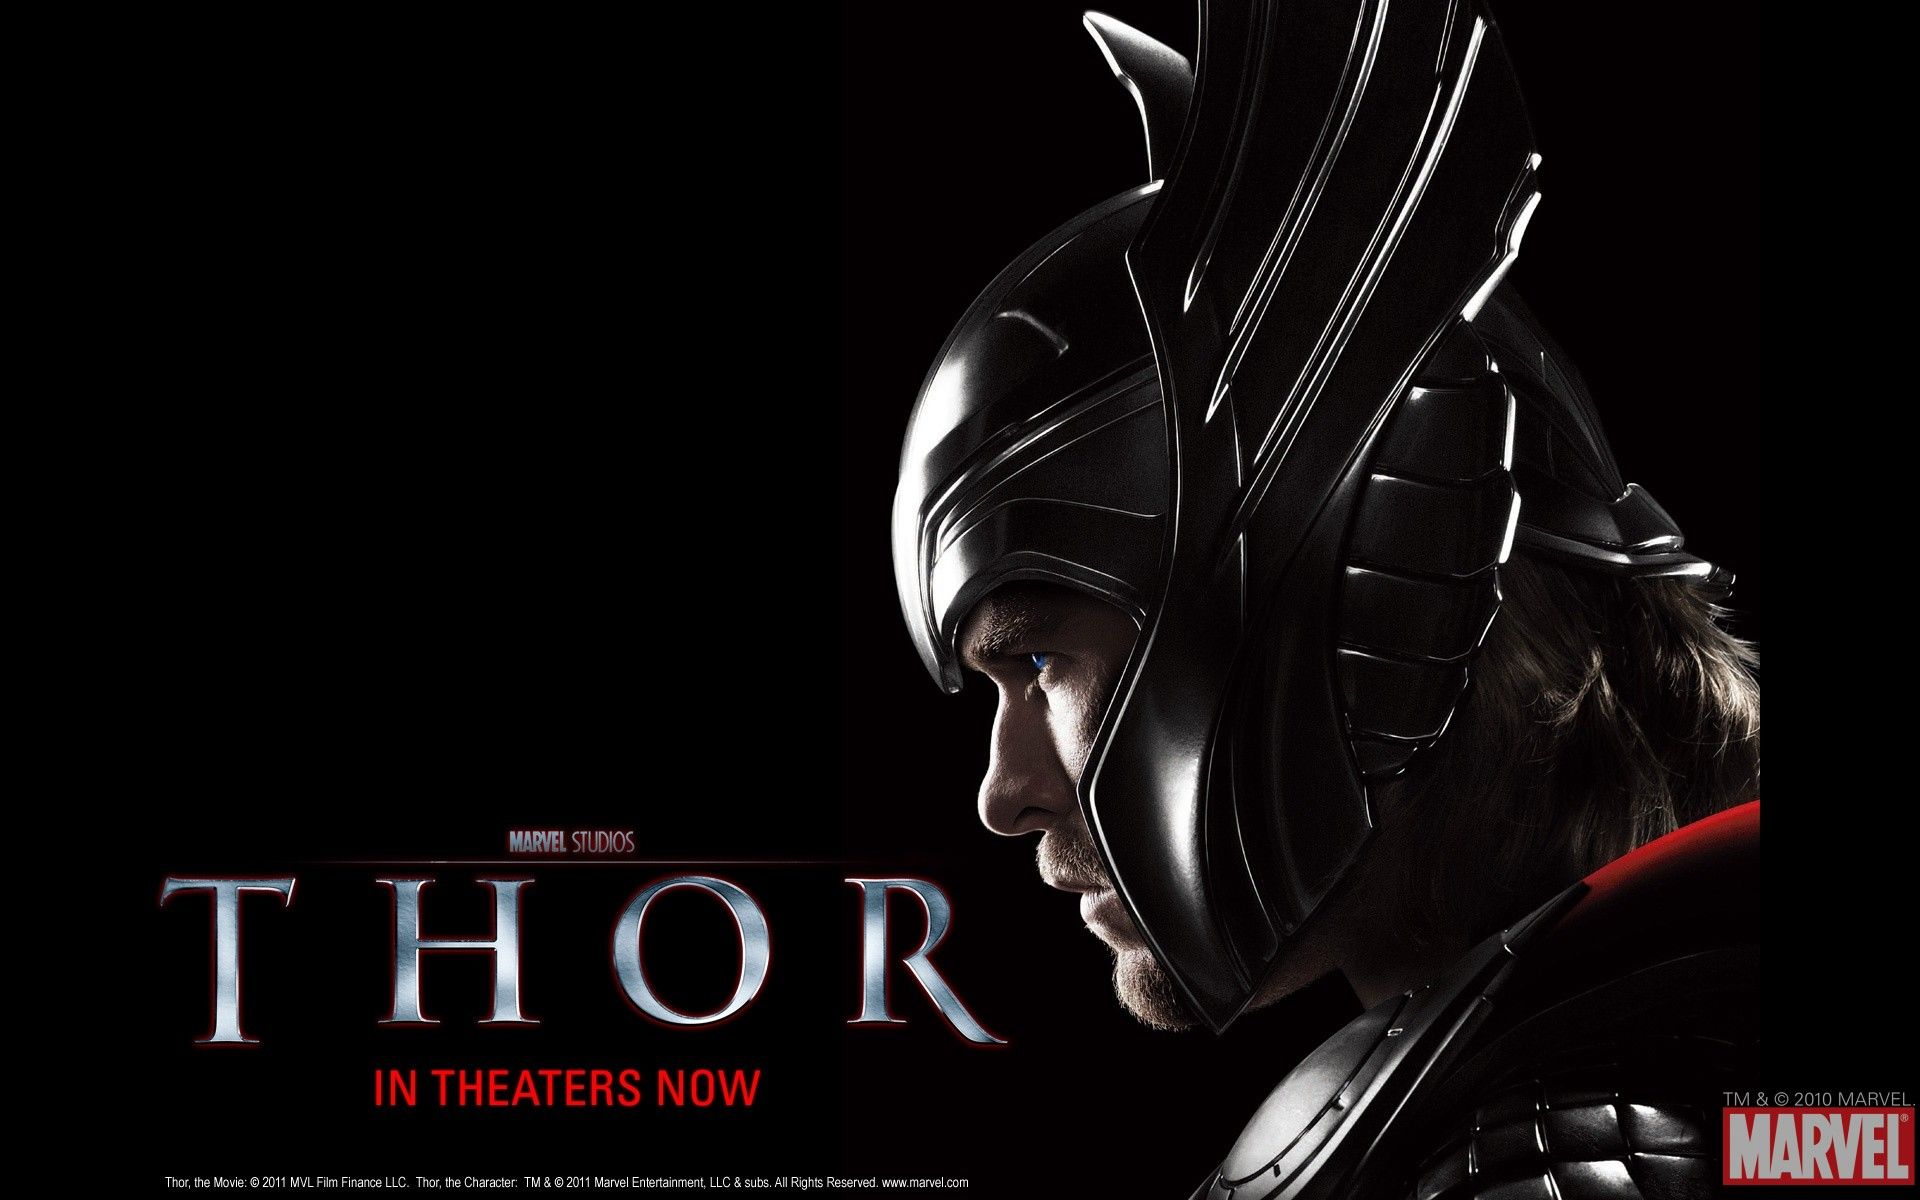 Download The Latest Thor HD Wallpaper From Wallpapers111